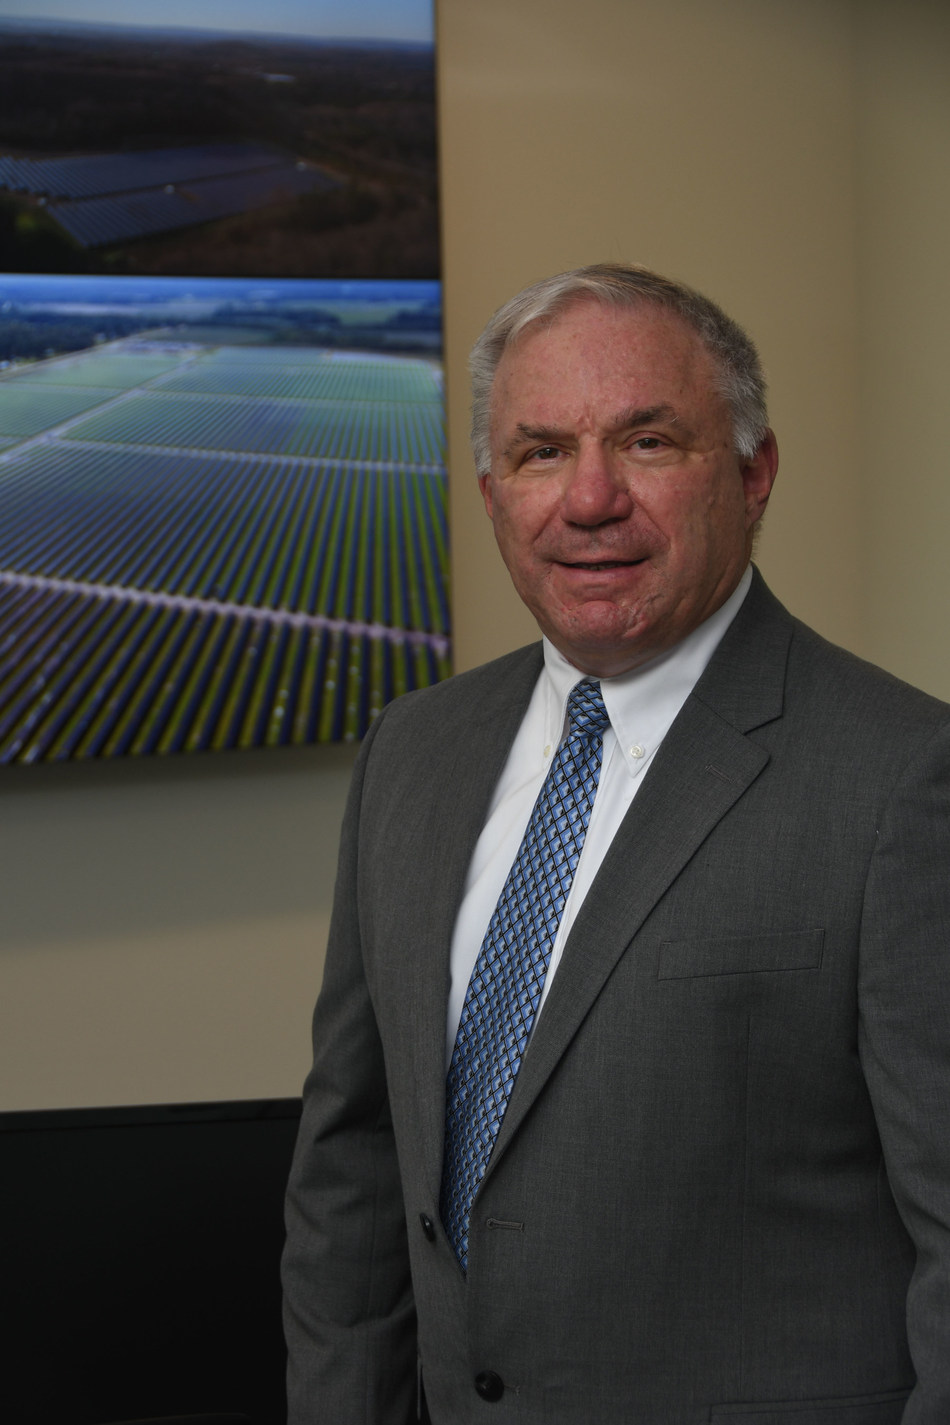 Electric co-op industry veteran Jim Bausell has joined Silicon Ranch as its EVP of Business Development